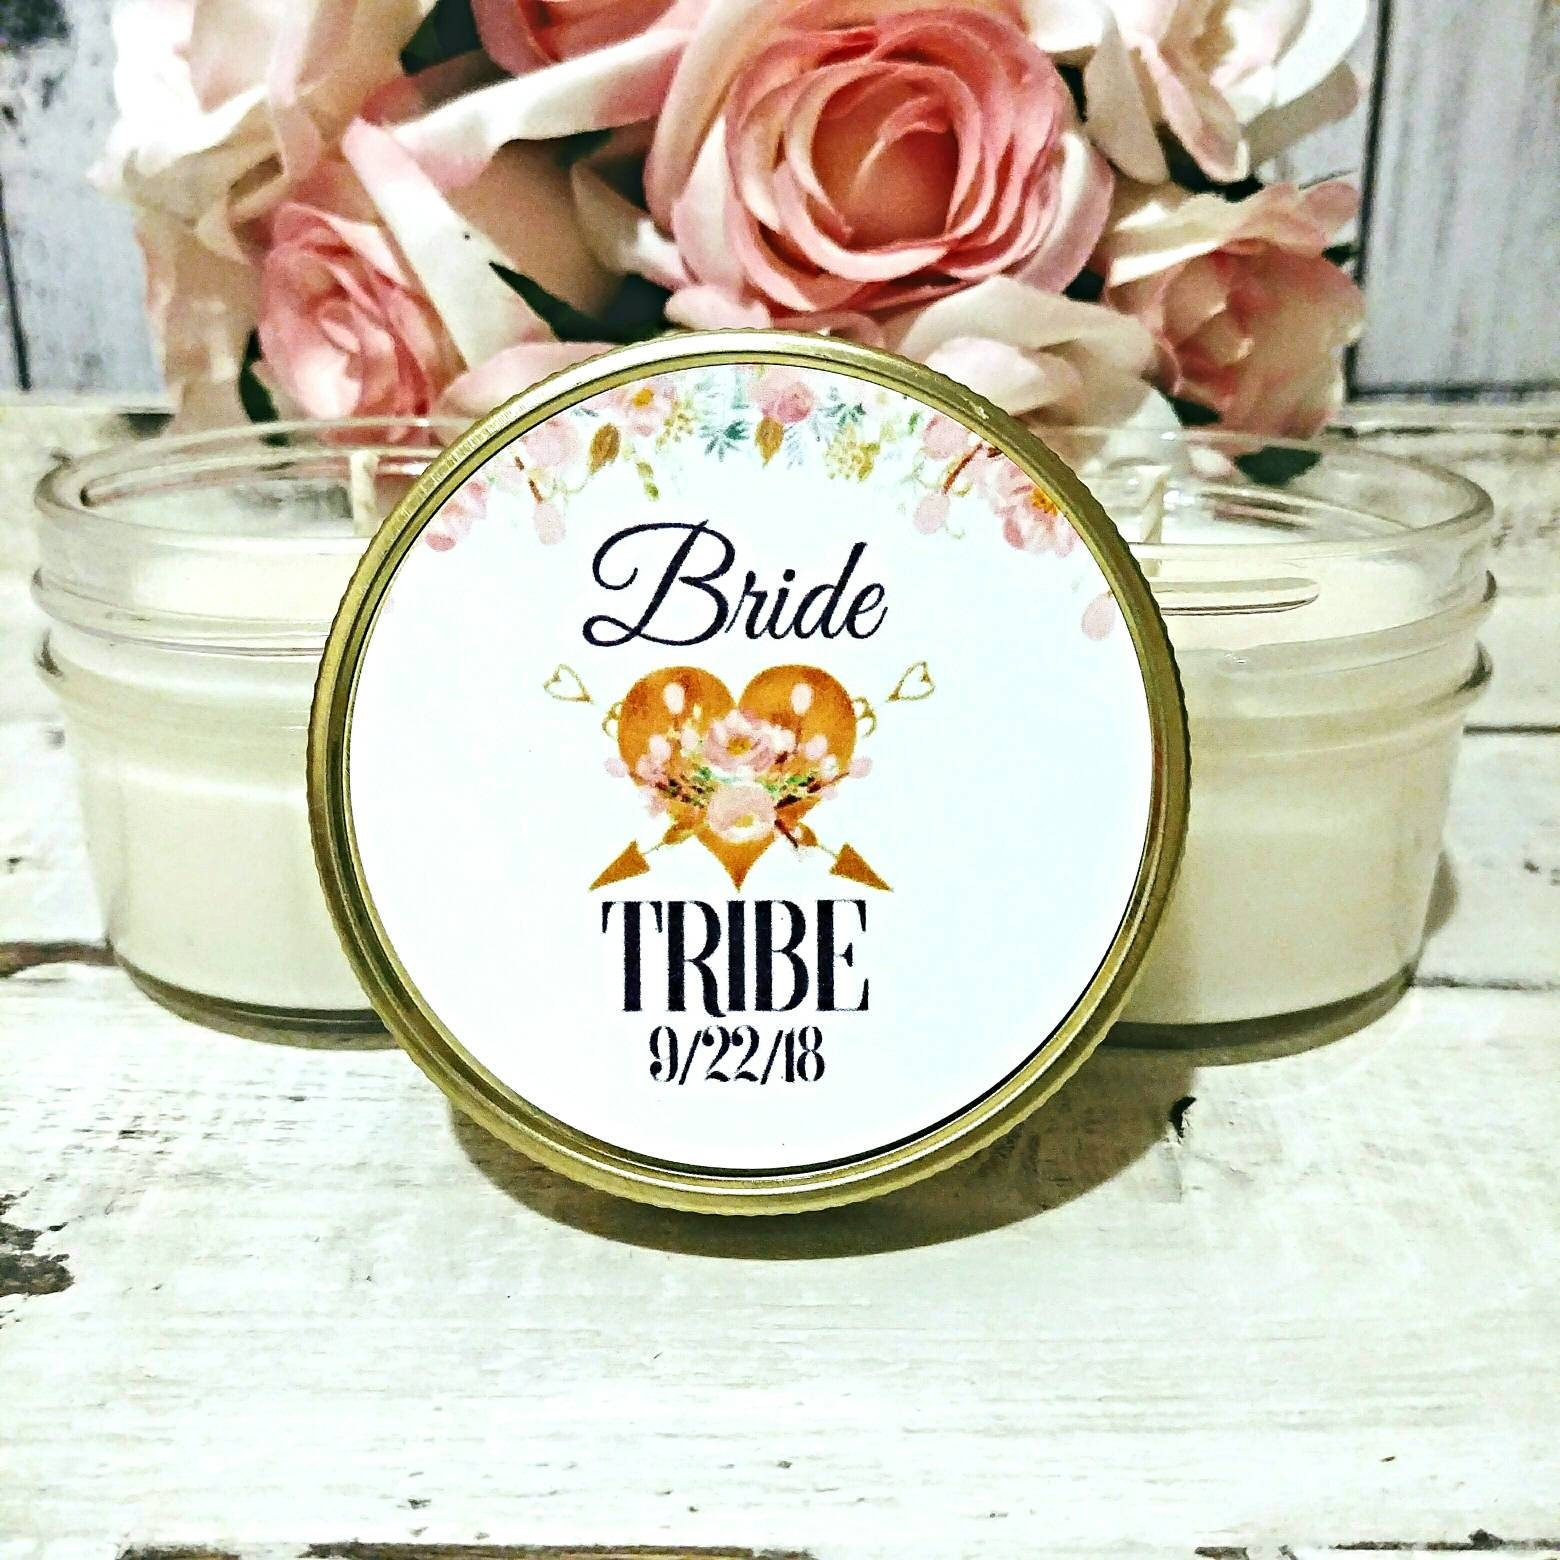 Bridesmaid Set of 7 - Soy Candles - Bride Tribe Candles - Bride ...